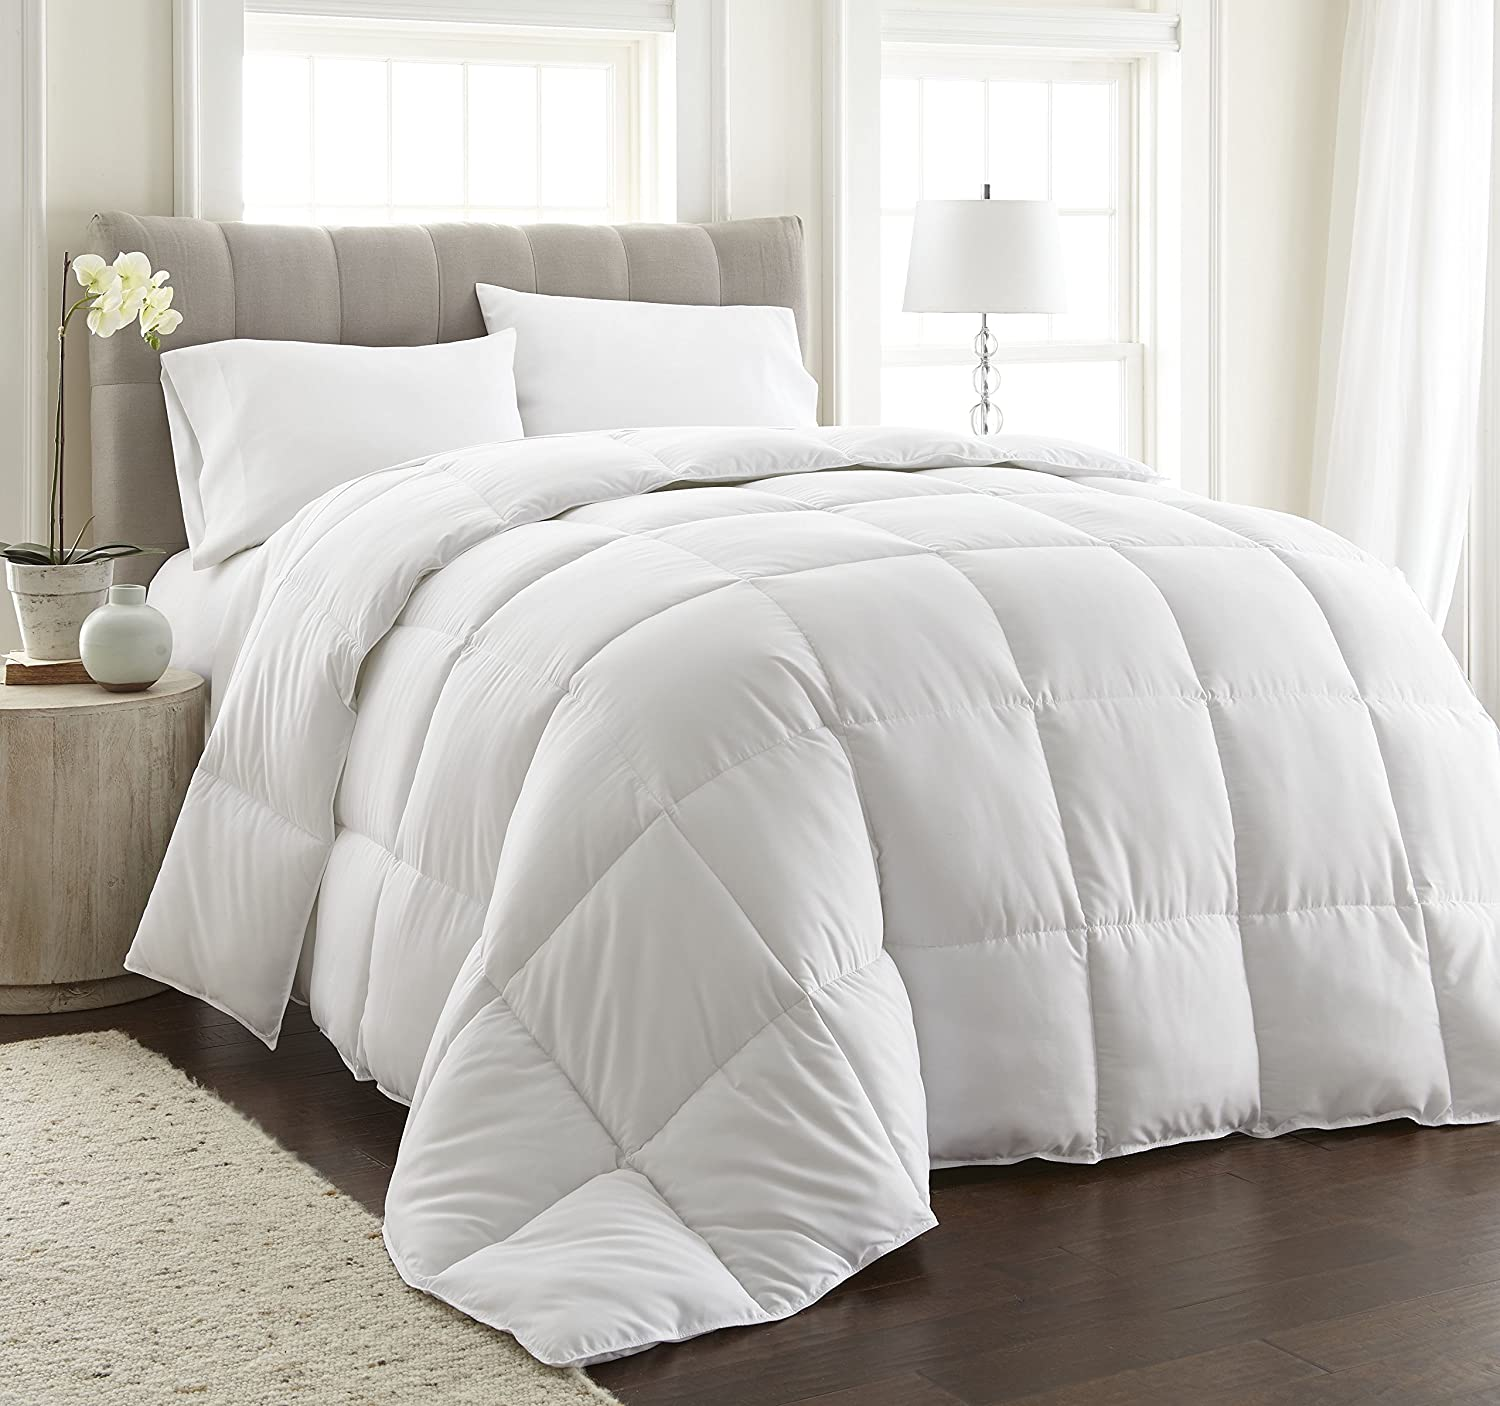 bed duvet insert pdp bath birch down alternative reviews comforter lane